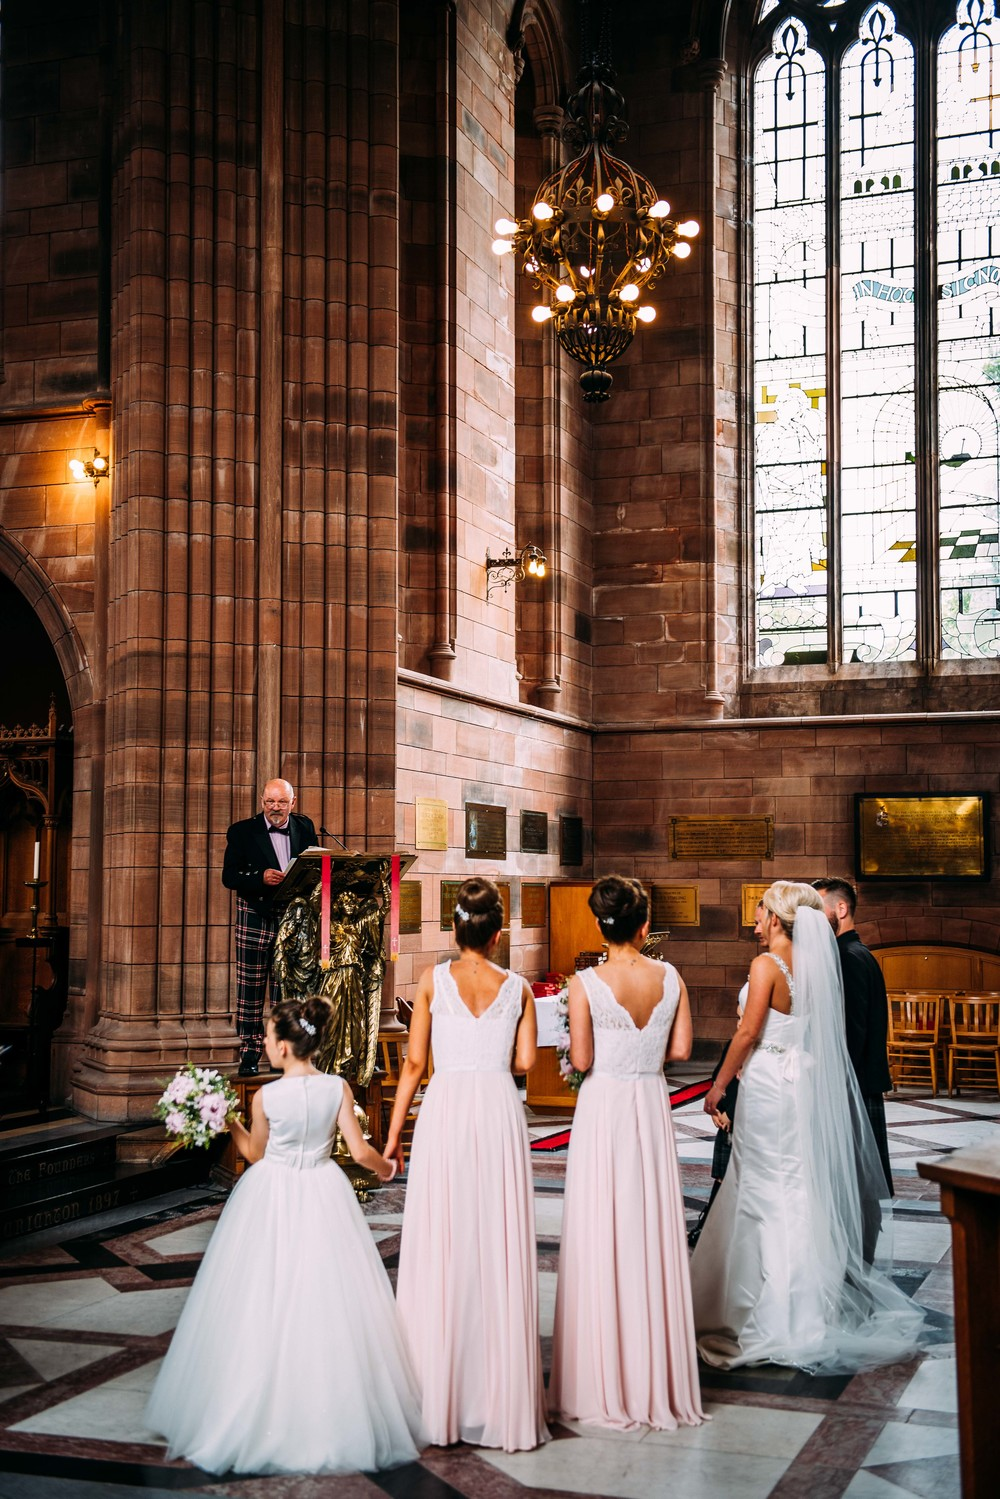 Dumfries-Wedding-Tom-Cairns-Photography-Easterbrook-Hall-Blush-Pink-Wedding-Details 34